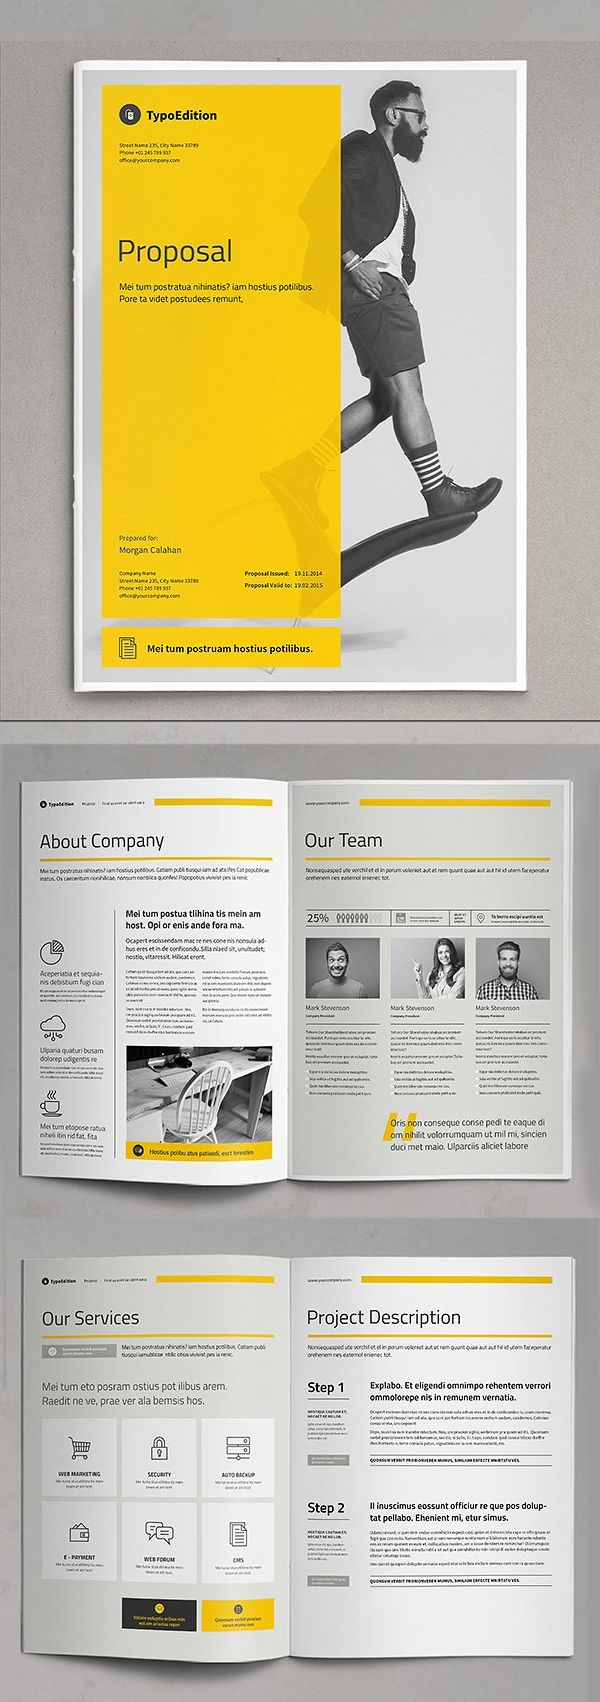 Professional Business Proposal Templates Design 3